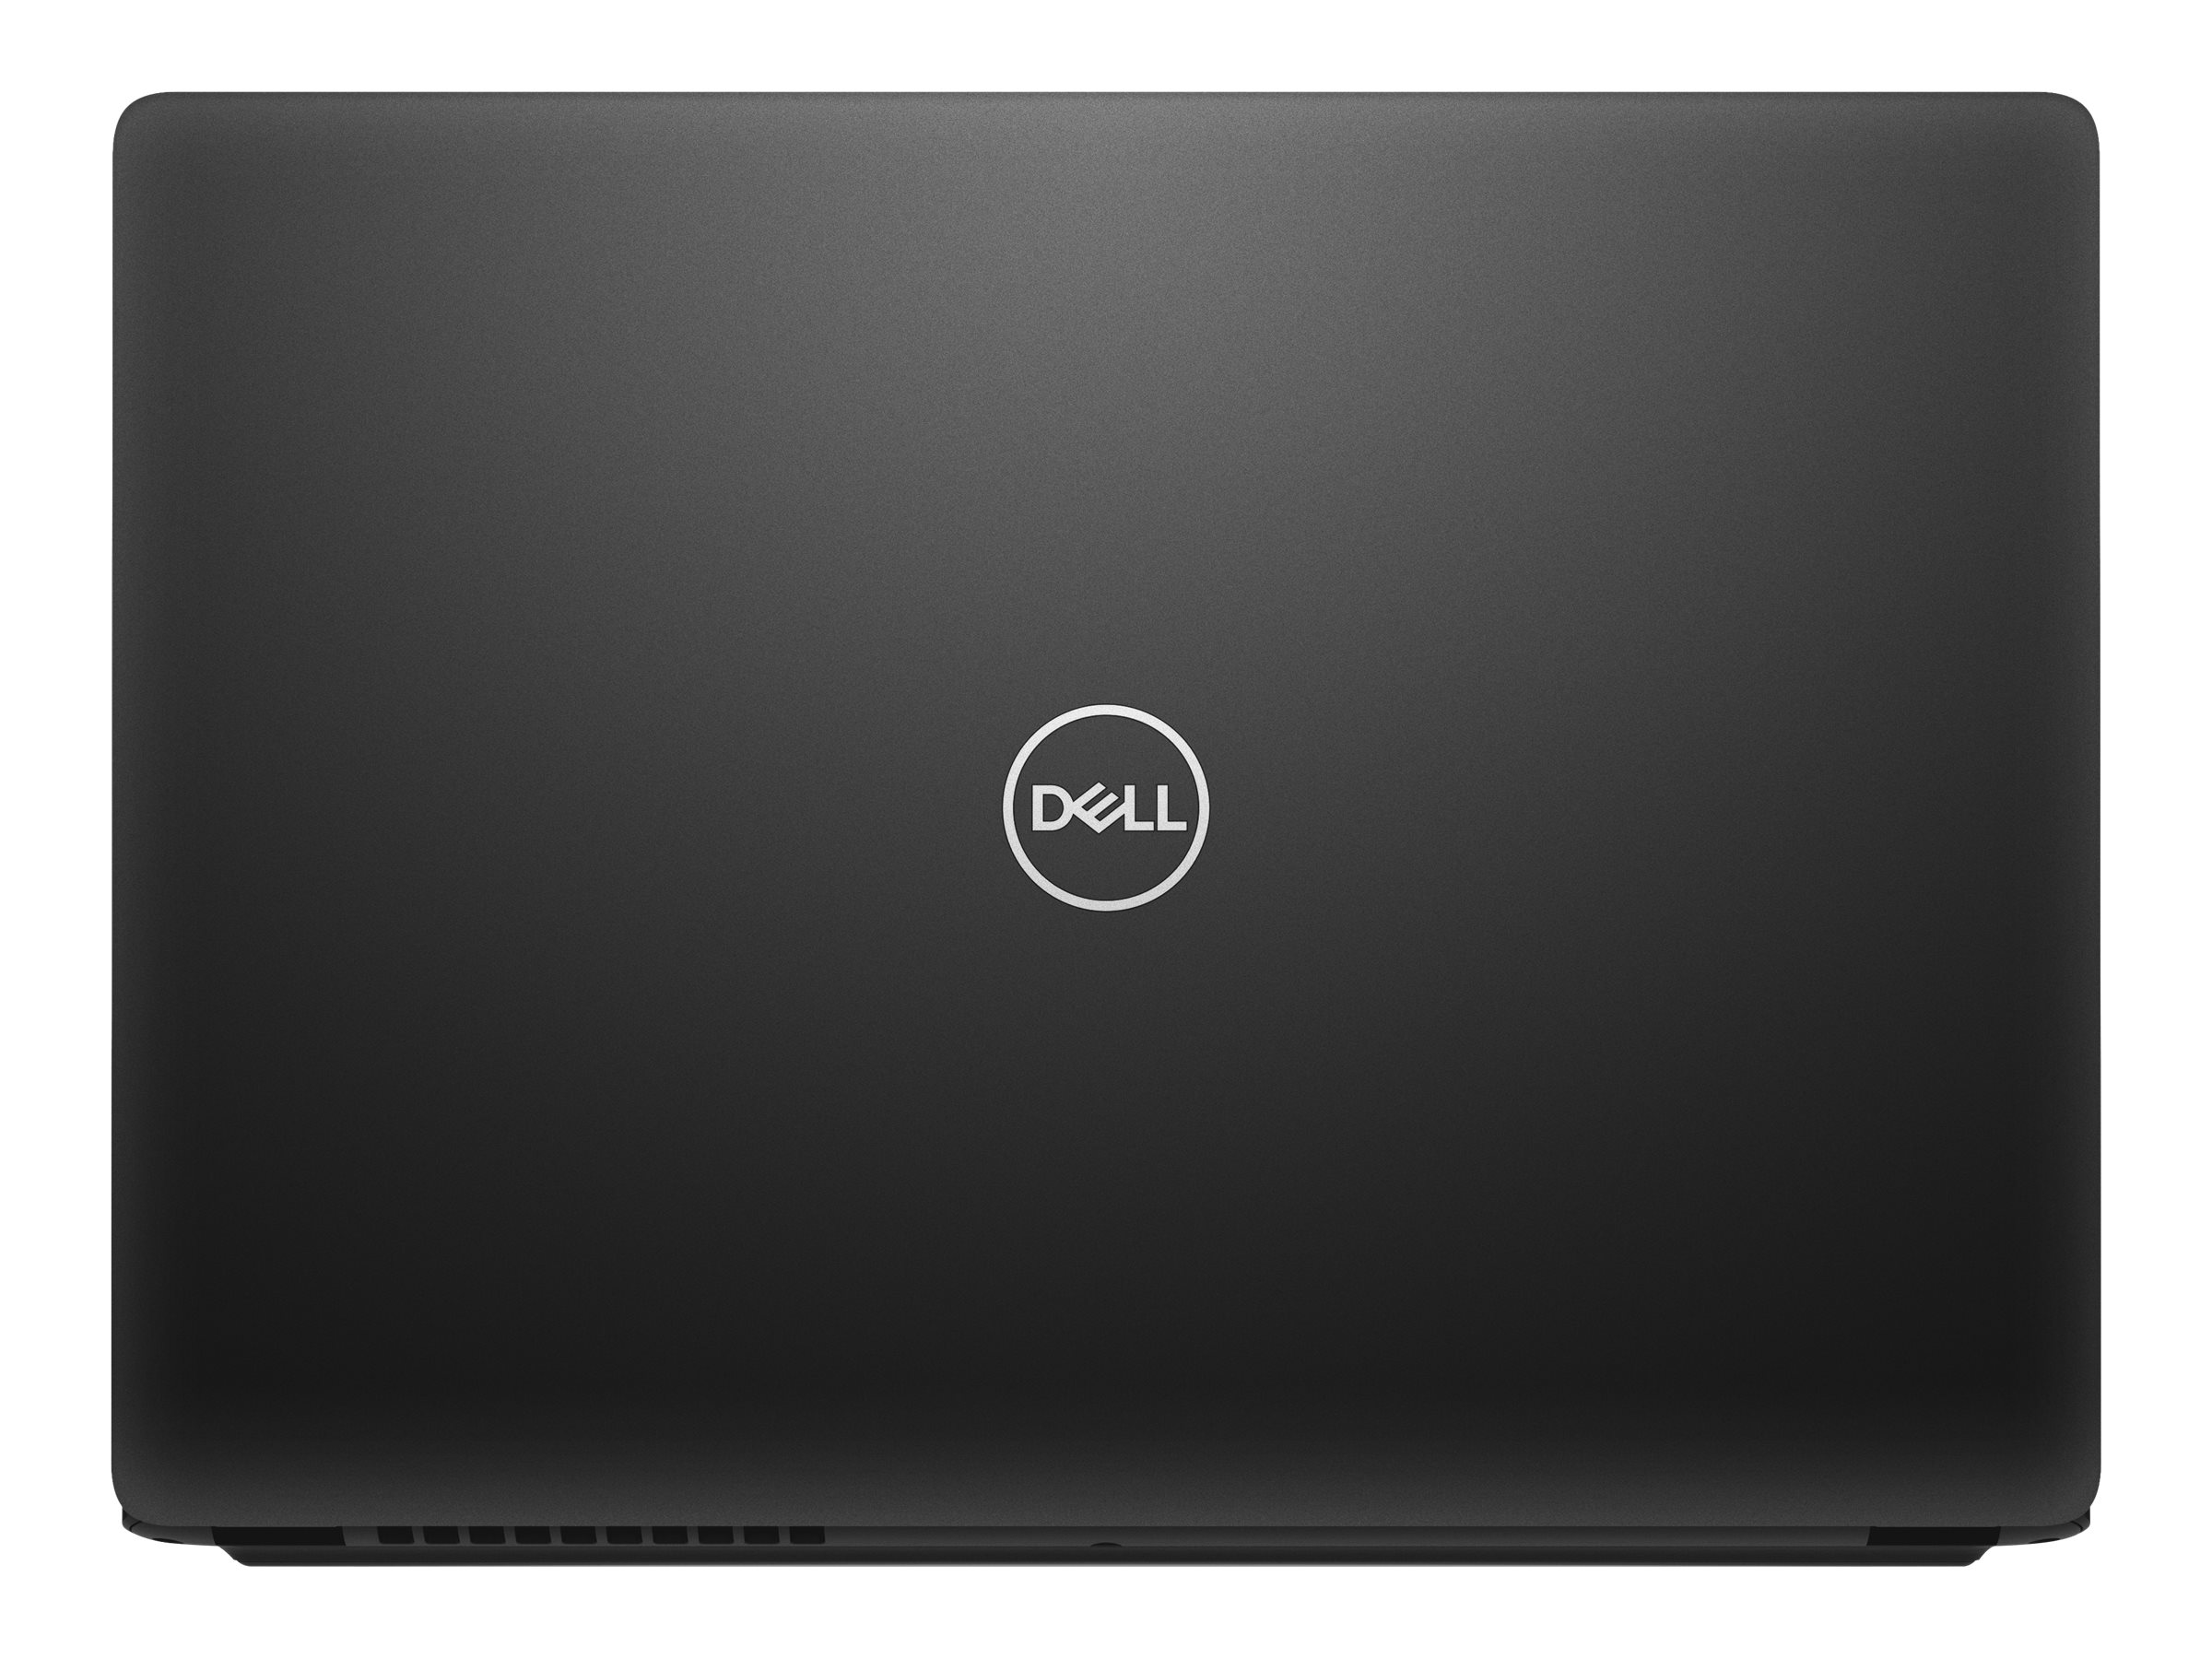 Dell Latitude 3480 Core i5-7200U 2.5GHz 8GB 128GB SSD ac BT 14 HD W10P64, 4M5J9